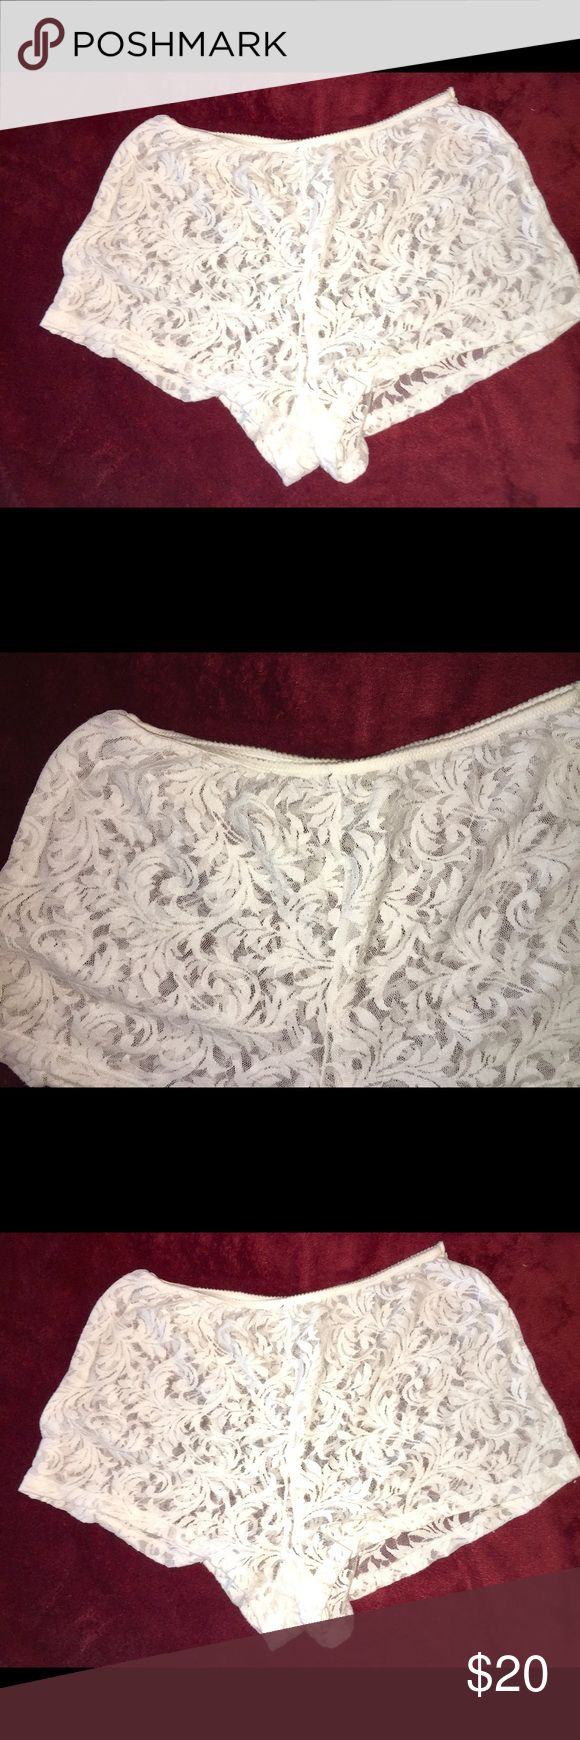 Calvin Klein Boy Panties.  NWOT Calvin Klein boy Panties are the cutest ever. White lace makes them so sexy -- everyone needs at least one pair of these--Gorgeous white lace Calvin Klein Intimates & Sleepwear Panties